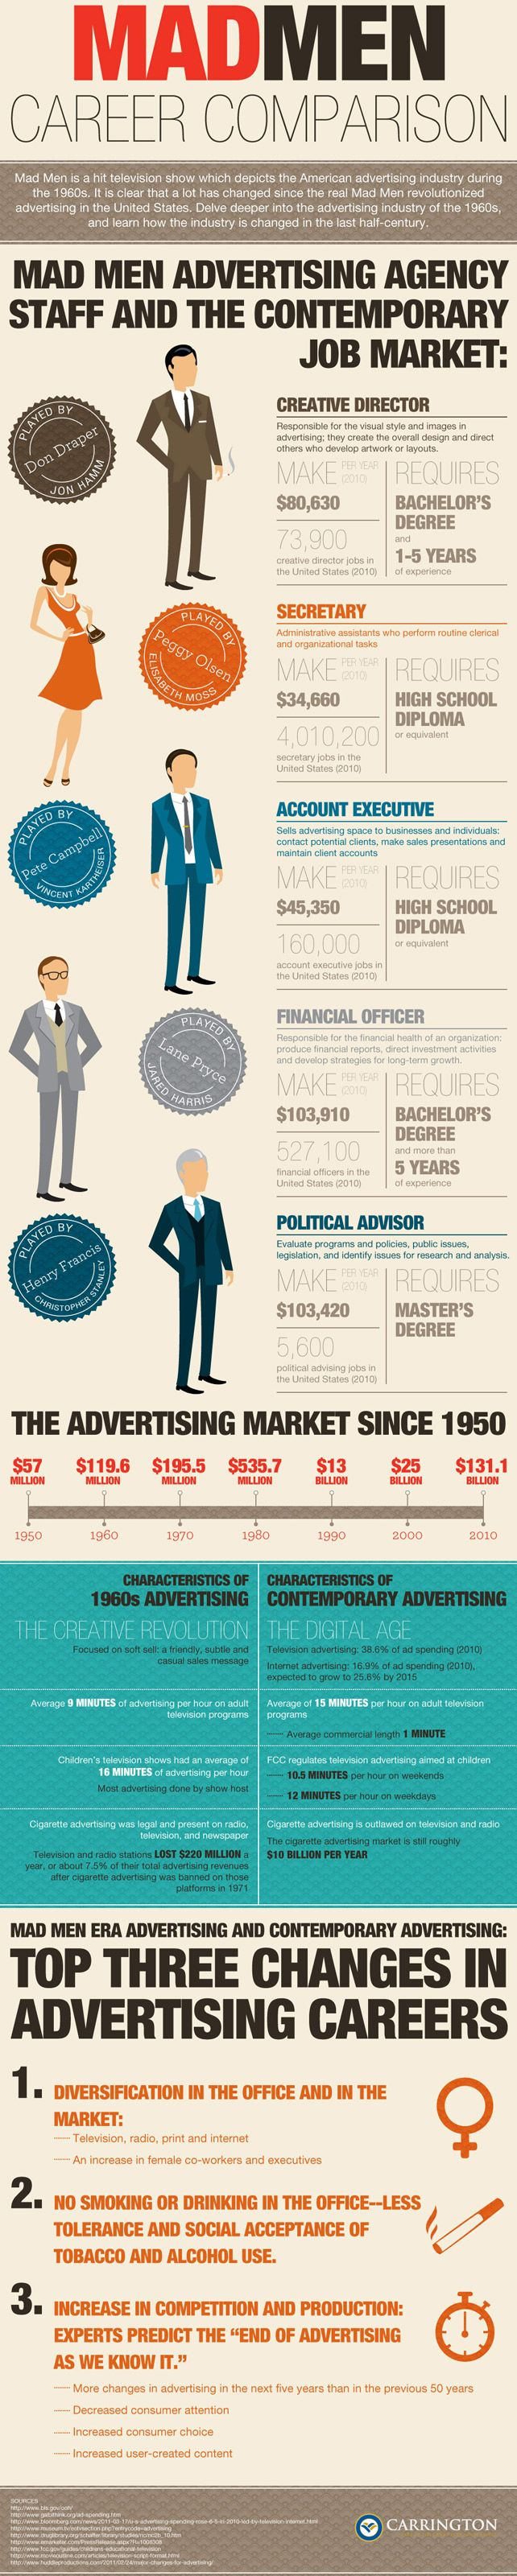 advertising in the legal profession essay Legal profession essay since the founding of the united states, law and politics have been clearly intertwined alexis de tocqueville reported that, in the united states, most legal issues become political issues and vice versa.